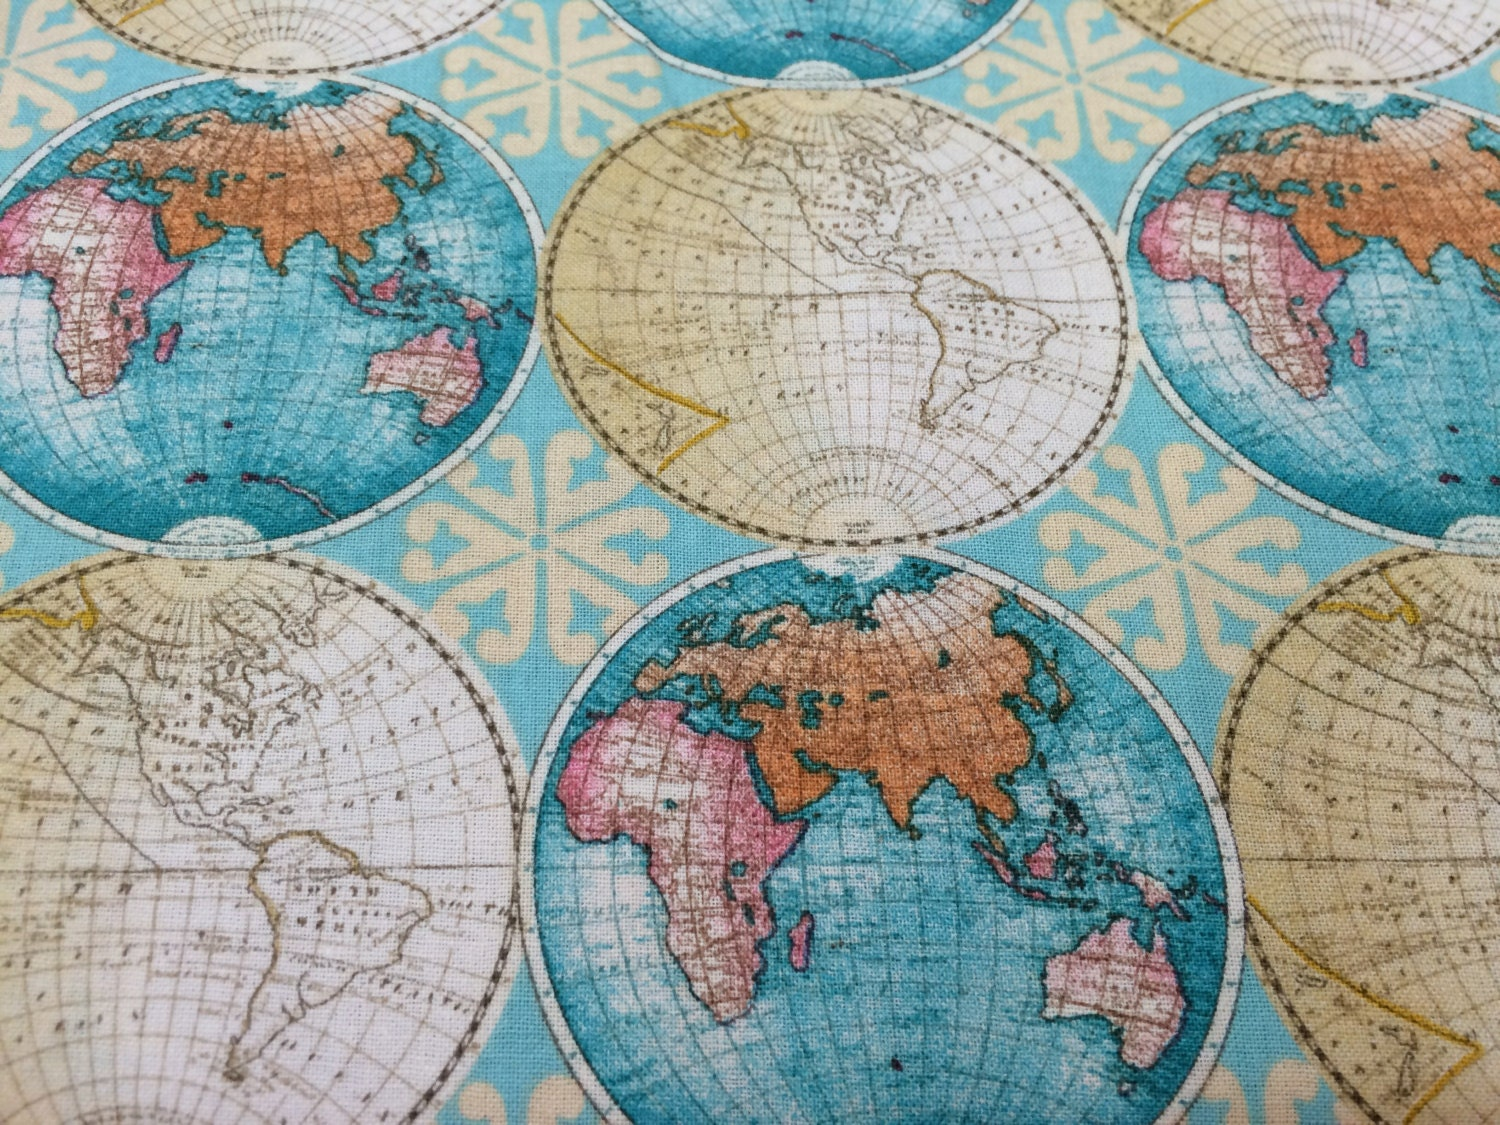 Vintage Style Globes World Map fabric novelty fabric world